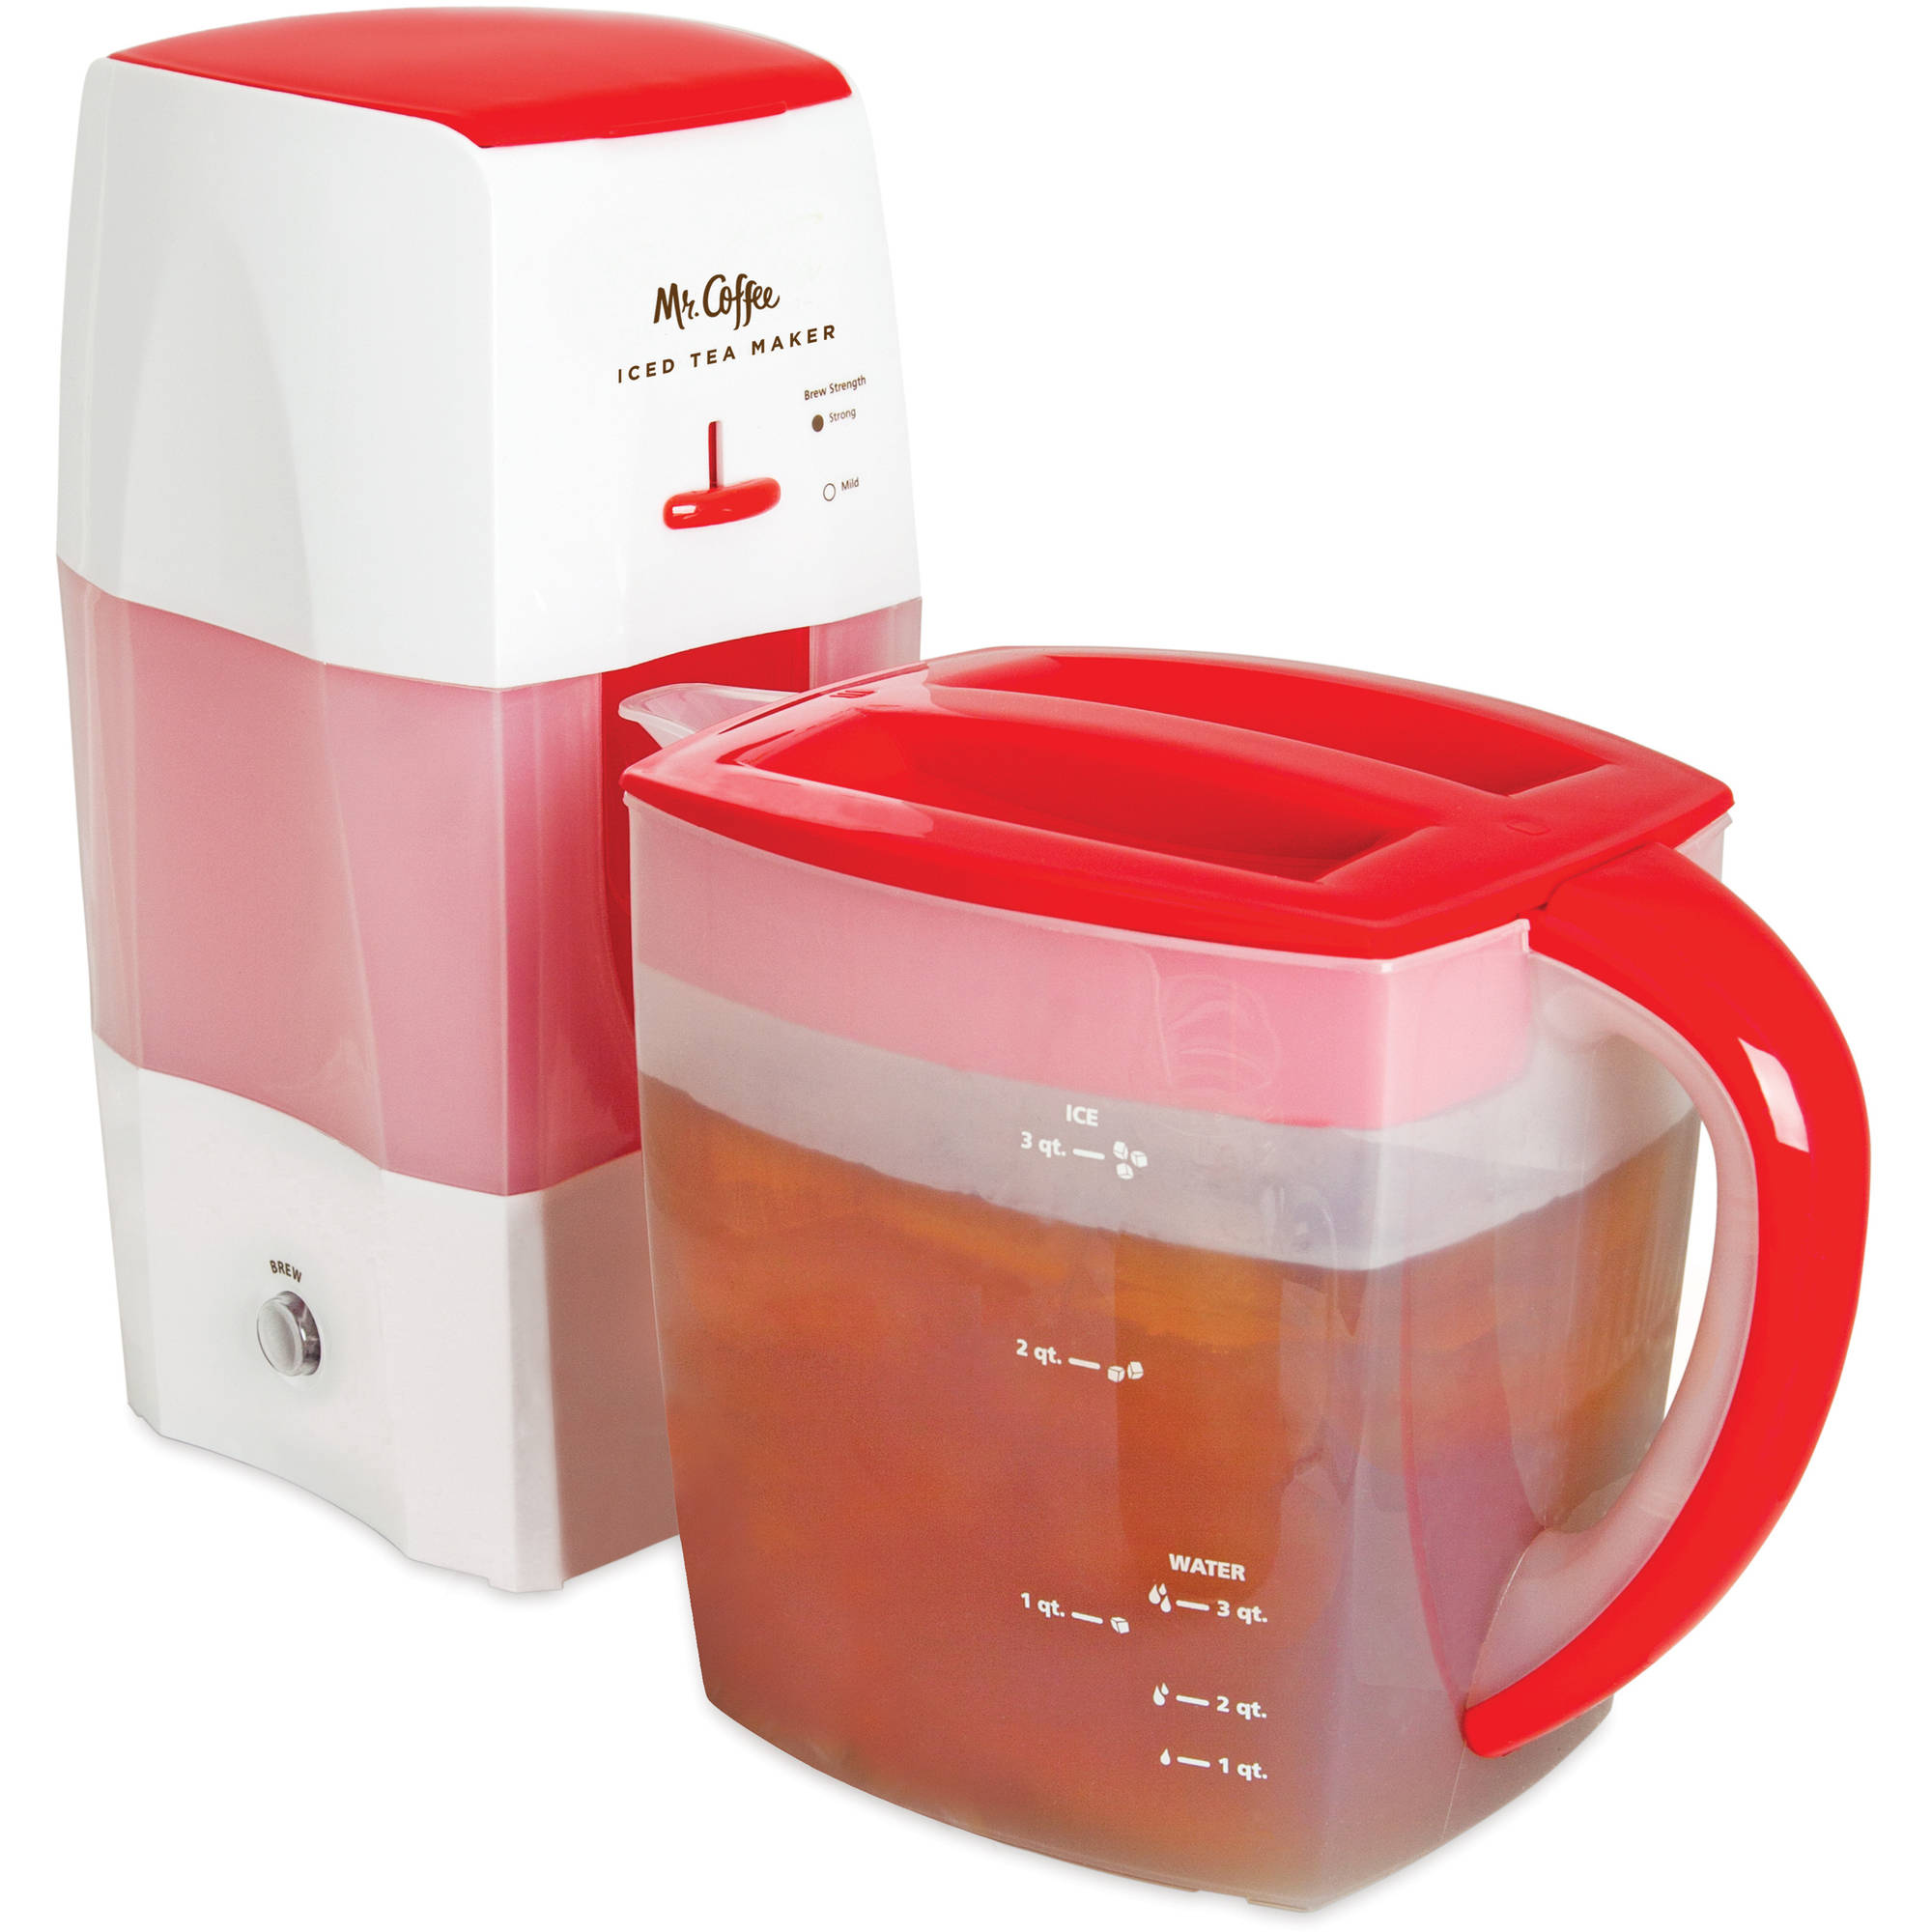 Owing to stainless steel body elements, this iced tea maker has an amazing design. You'll be surprised how easy you can make a glass of refreshing iced tea.